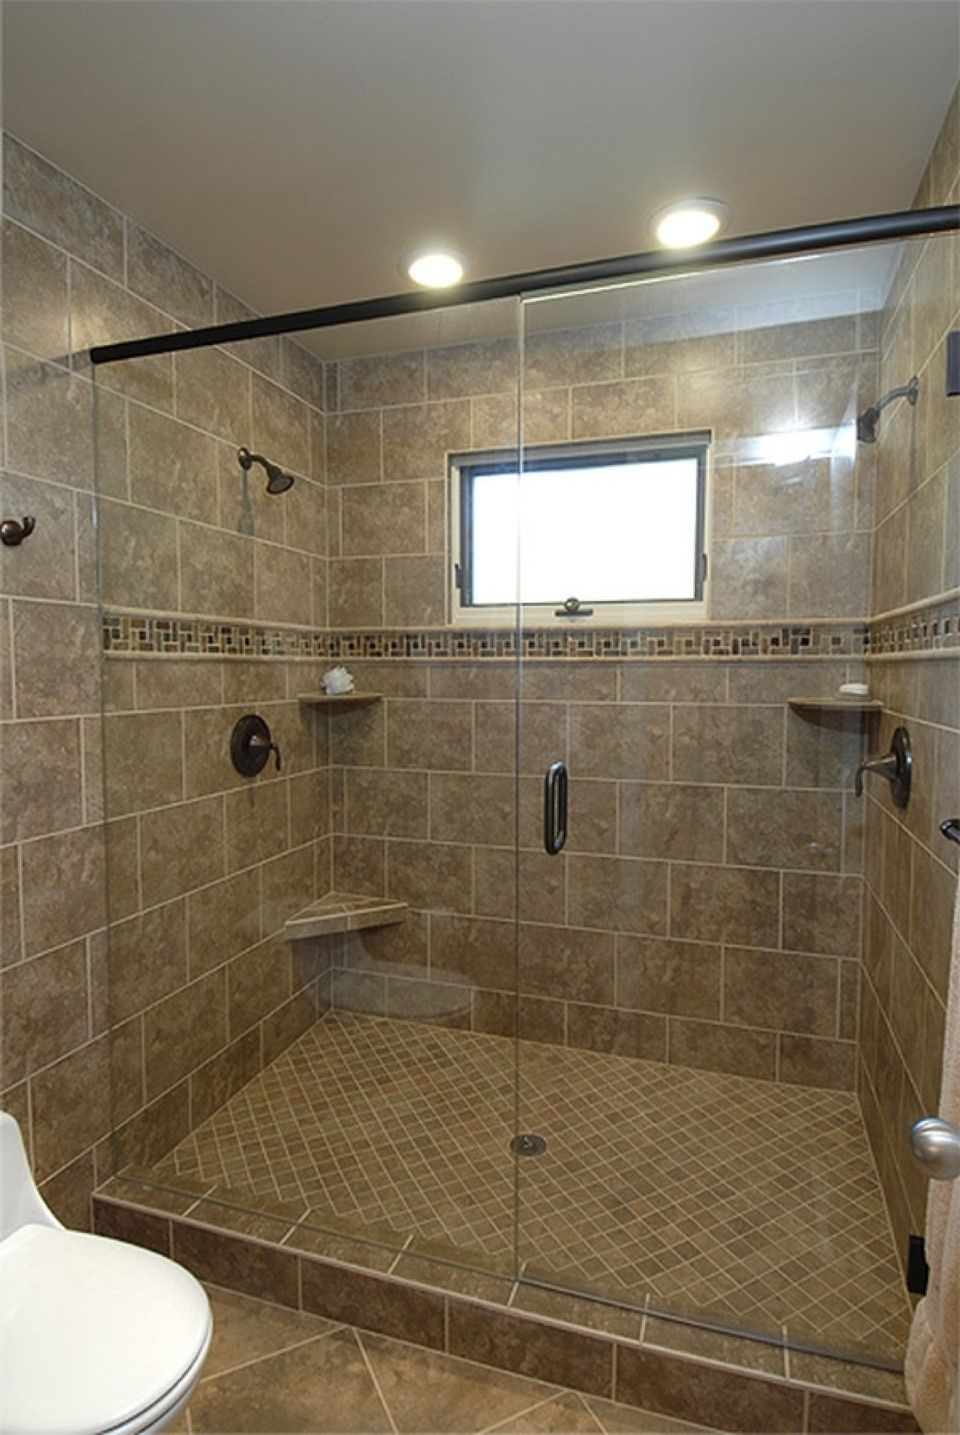 showers with bullnose around window - Google Search ...